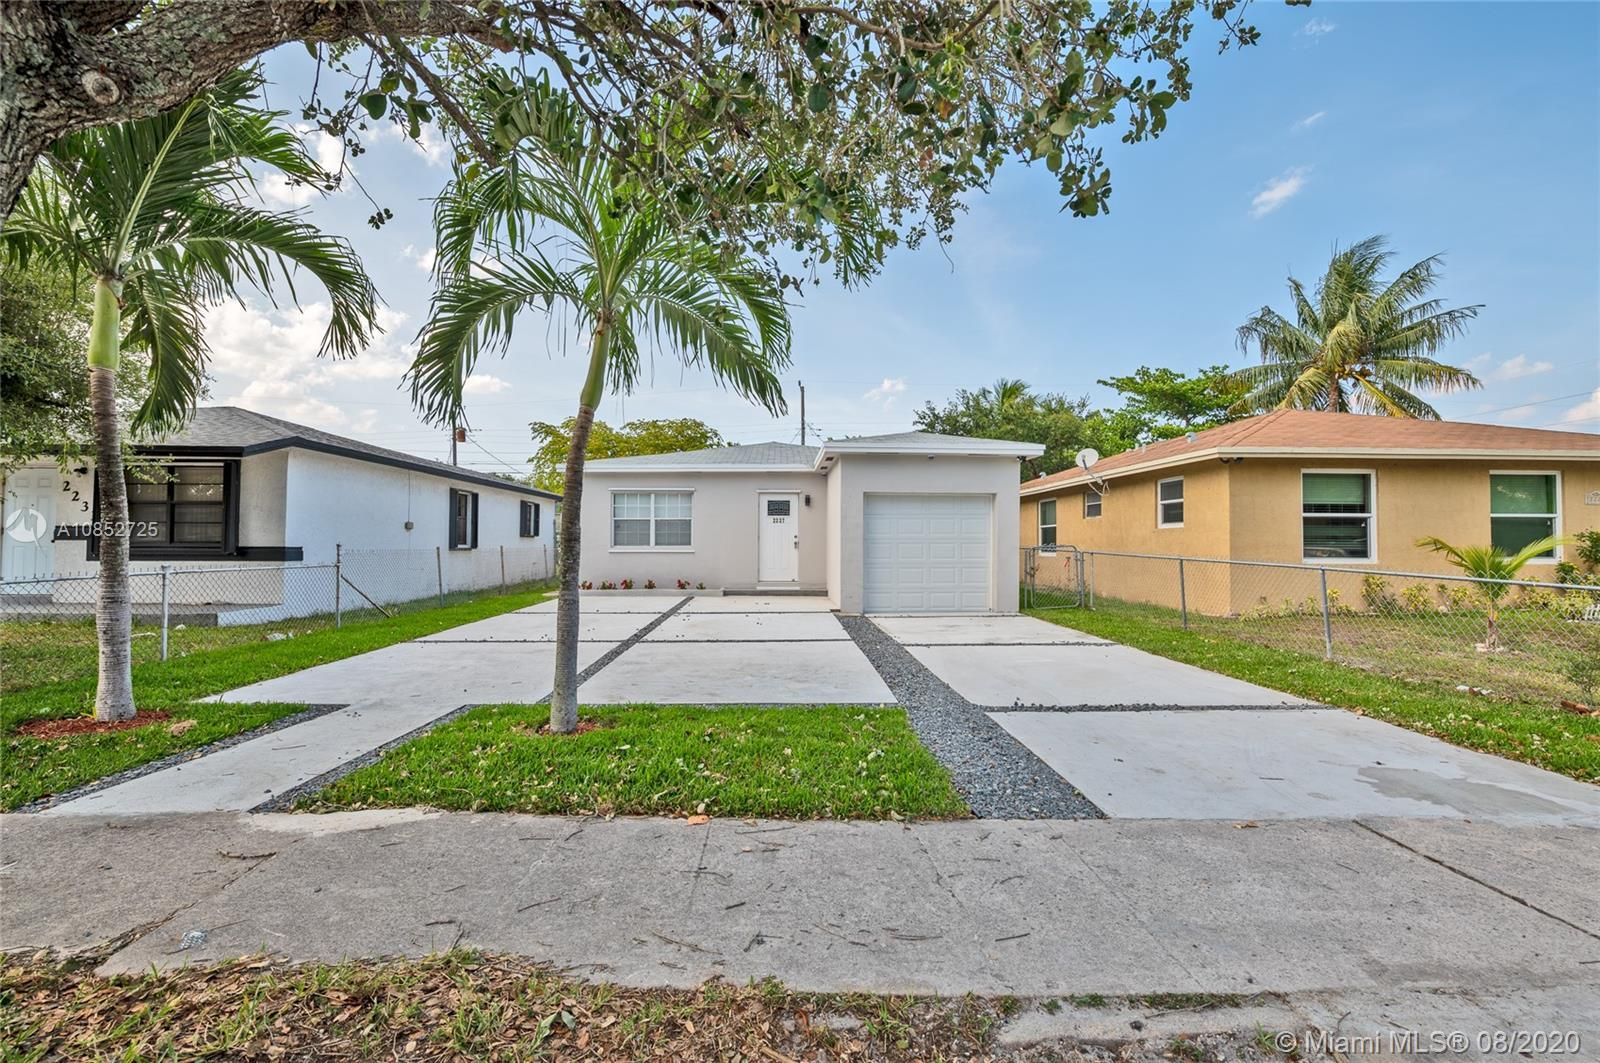 Beautiful complete home New Remodeled, this home is located close to major highways, You will be liv